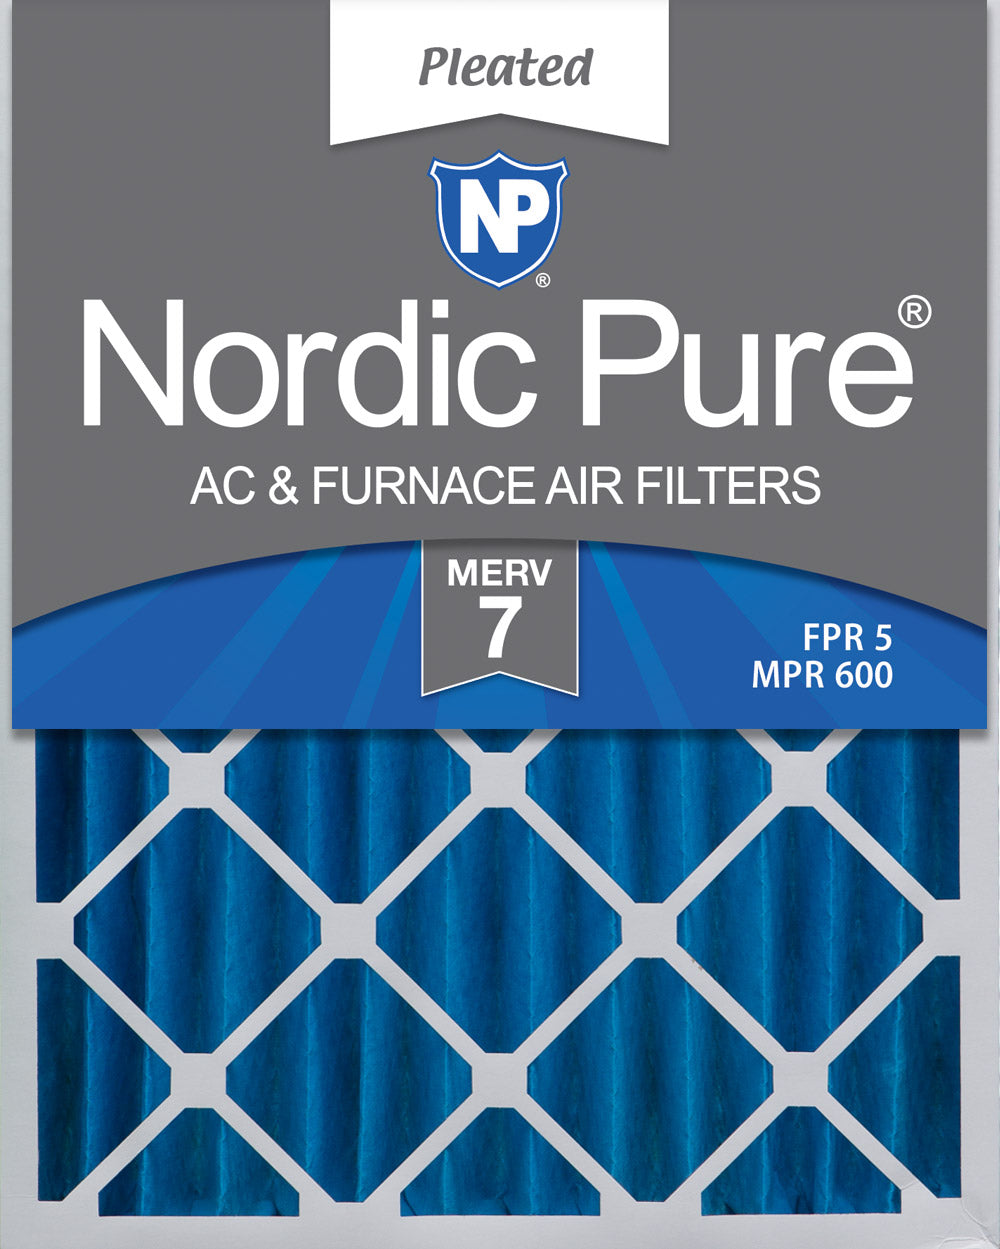 20x25x4 (3 5/8) Pleated MERV 7 Air Filters 2 Pack